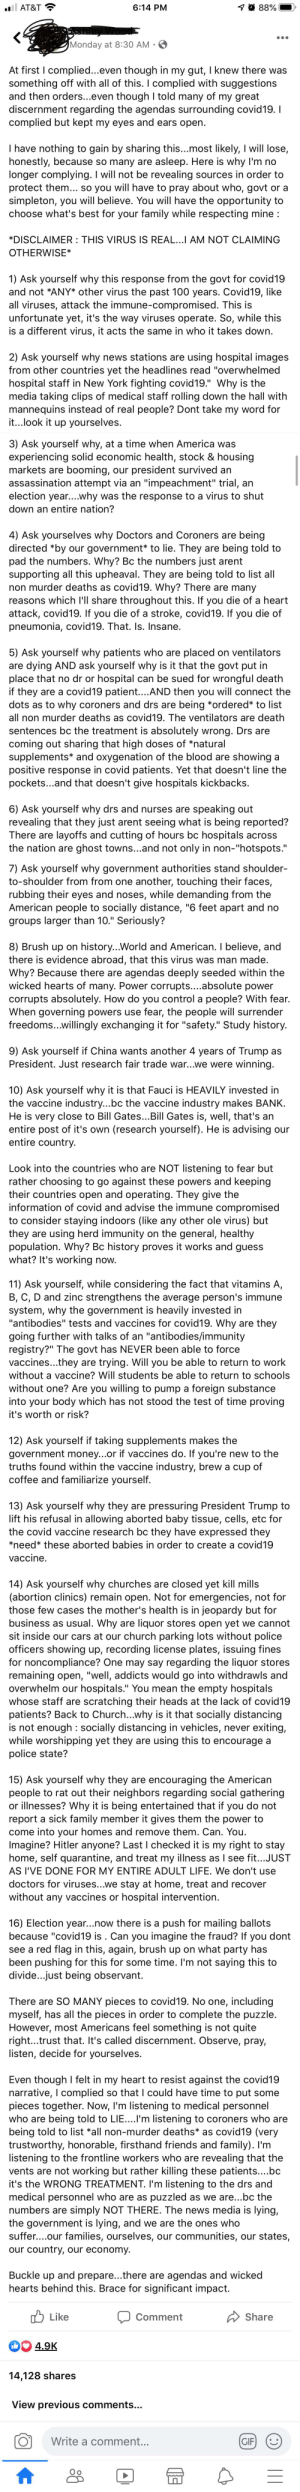 Pandemic conspiracy to vaccinate the masses and remove Trump. Couldn't share sources because...reasons. My soul hurts after reading this garbage.: Pandemic conspiracy to vaccinate the masses and remove Trump. Couldn't share sources because...reasons. My soul hurts after reading this garbage.